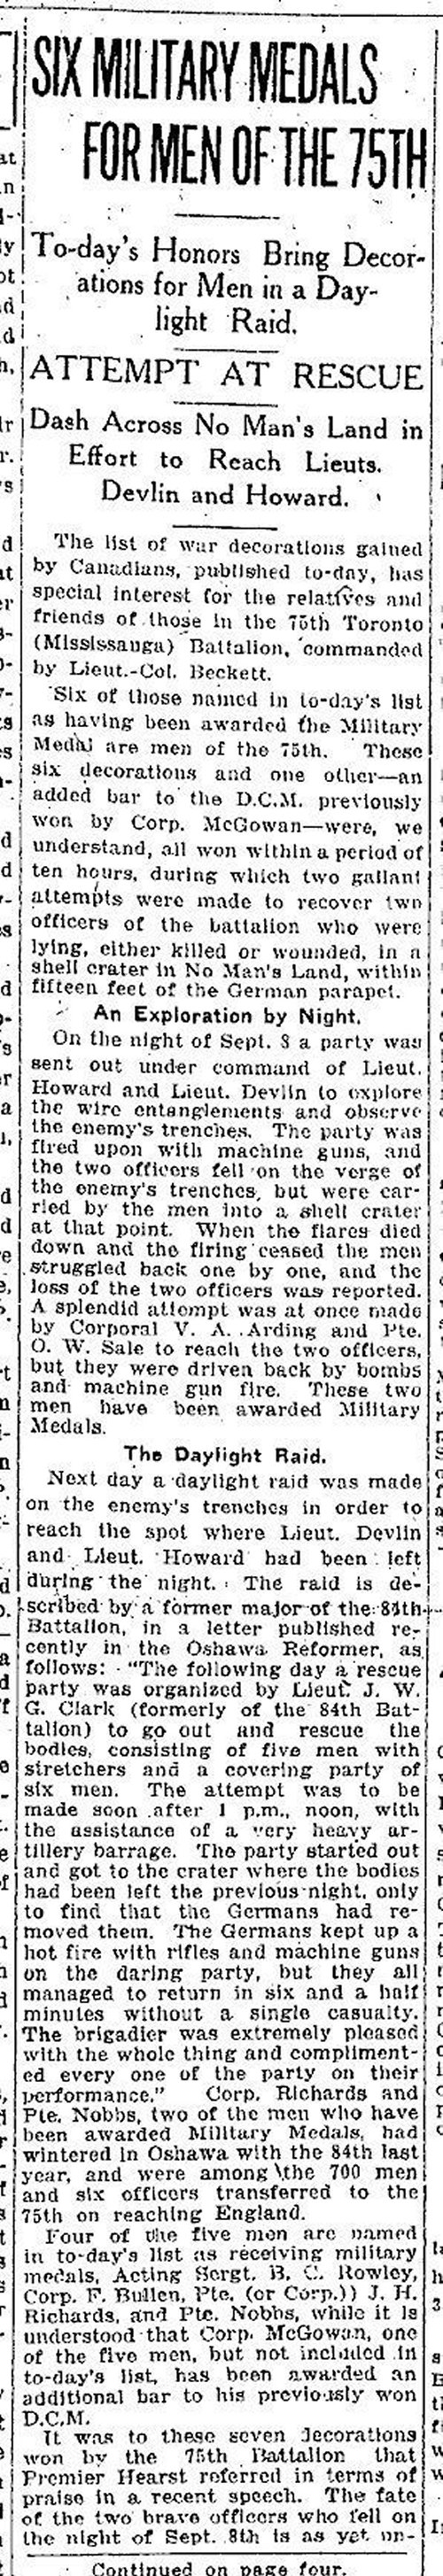 Newspaper Clipping (1 of 2)